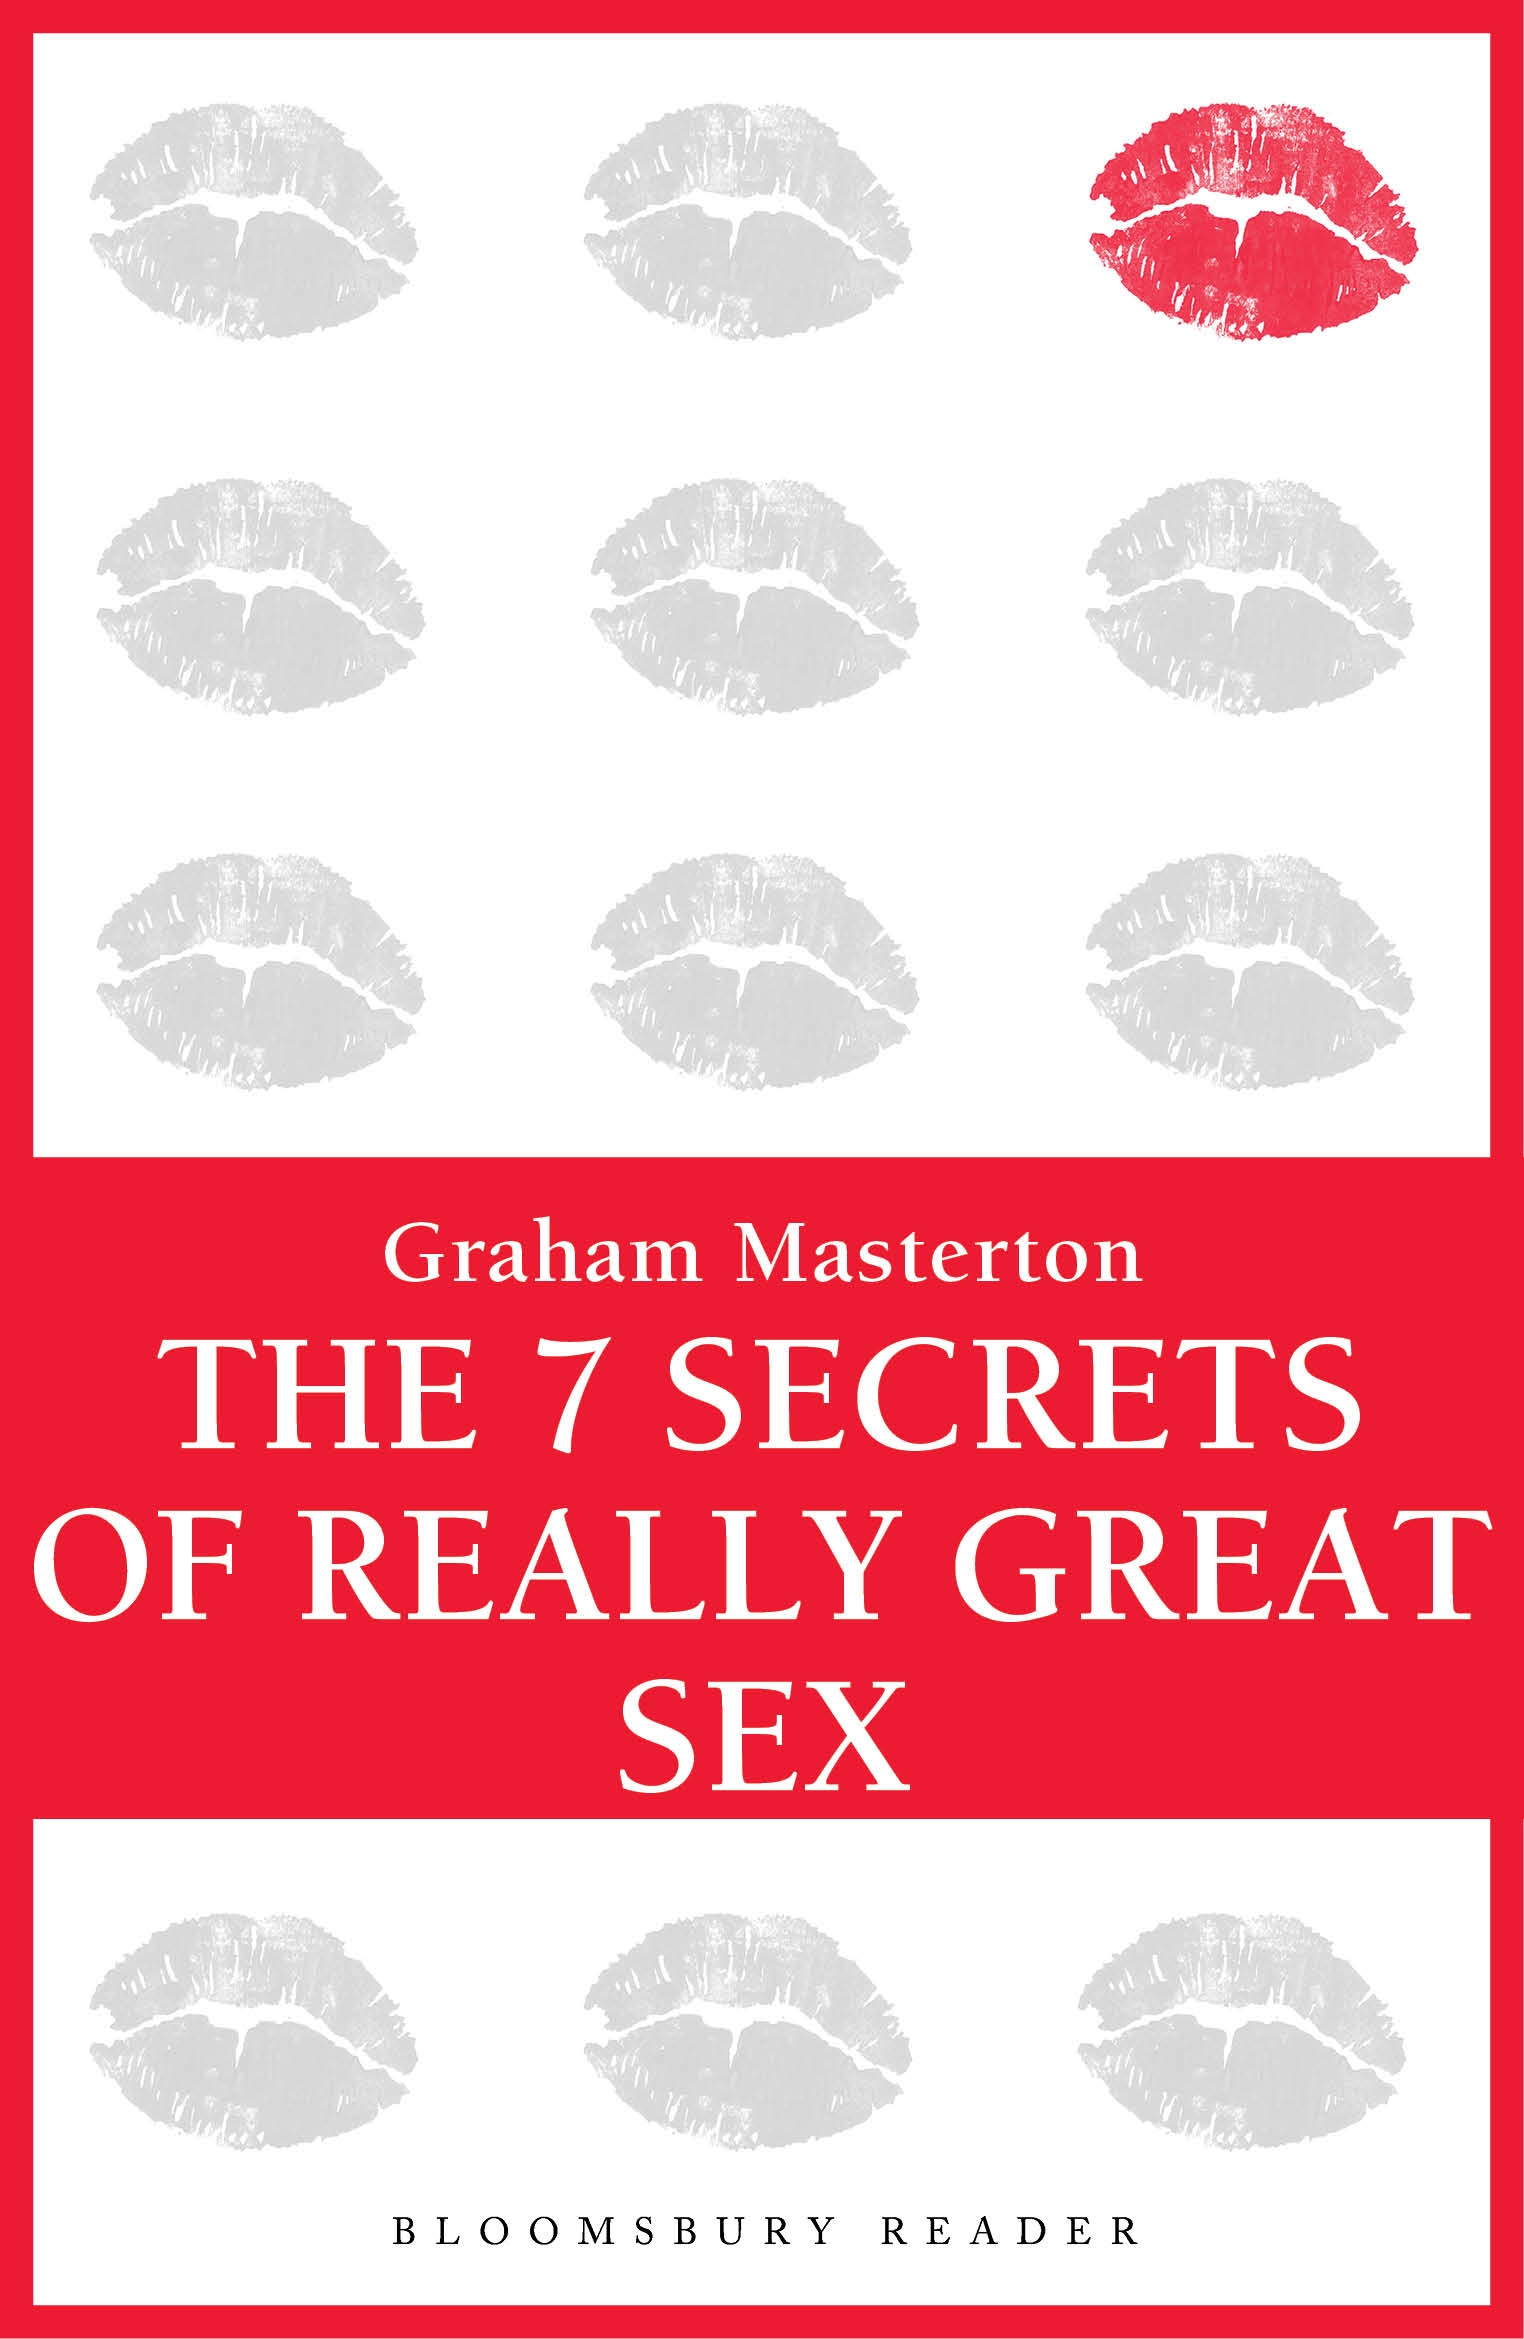 The 7 Secrets of Really Great Sex